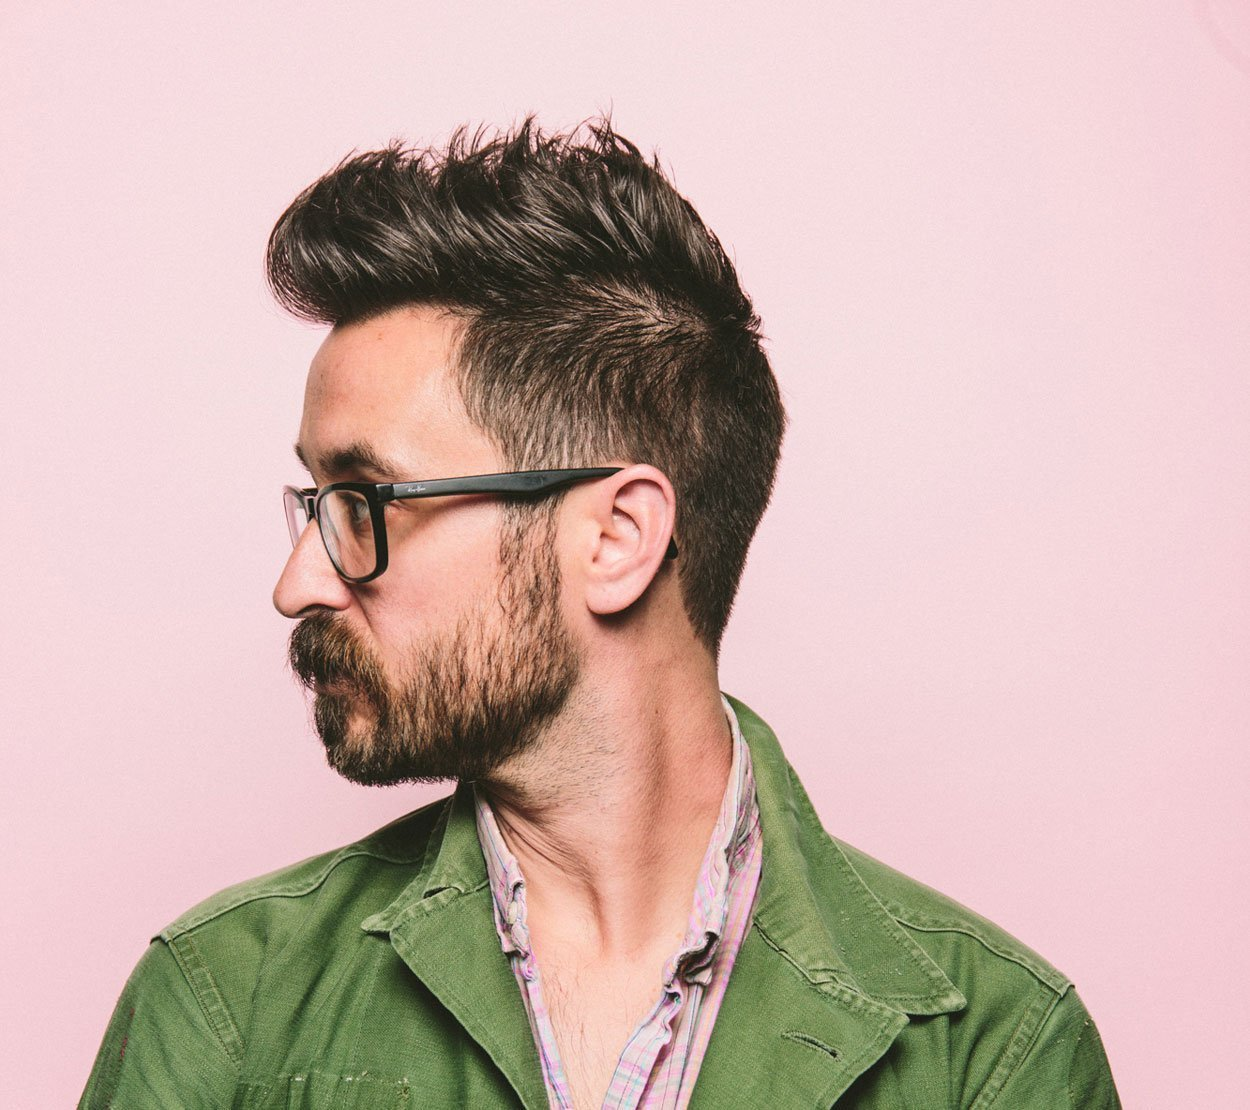 US singer/songwriter SEAN MCCONNELL announces headline Belfast show at The Limelight 2 on Sunday 9th February 2020